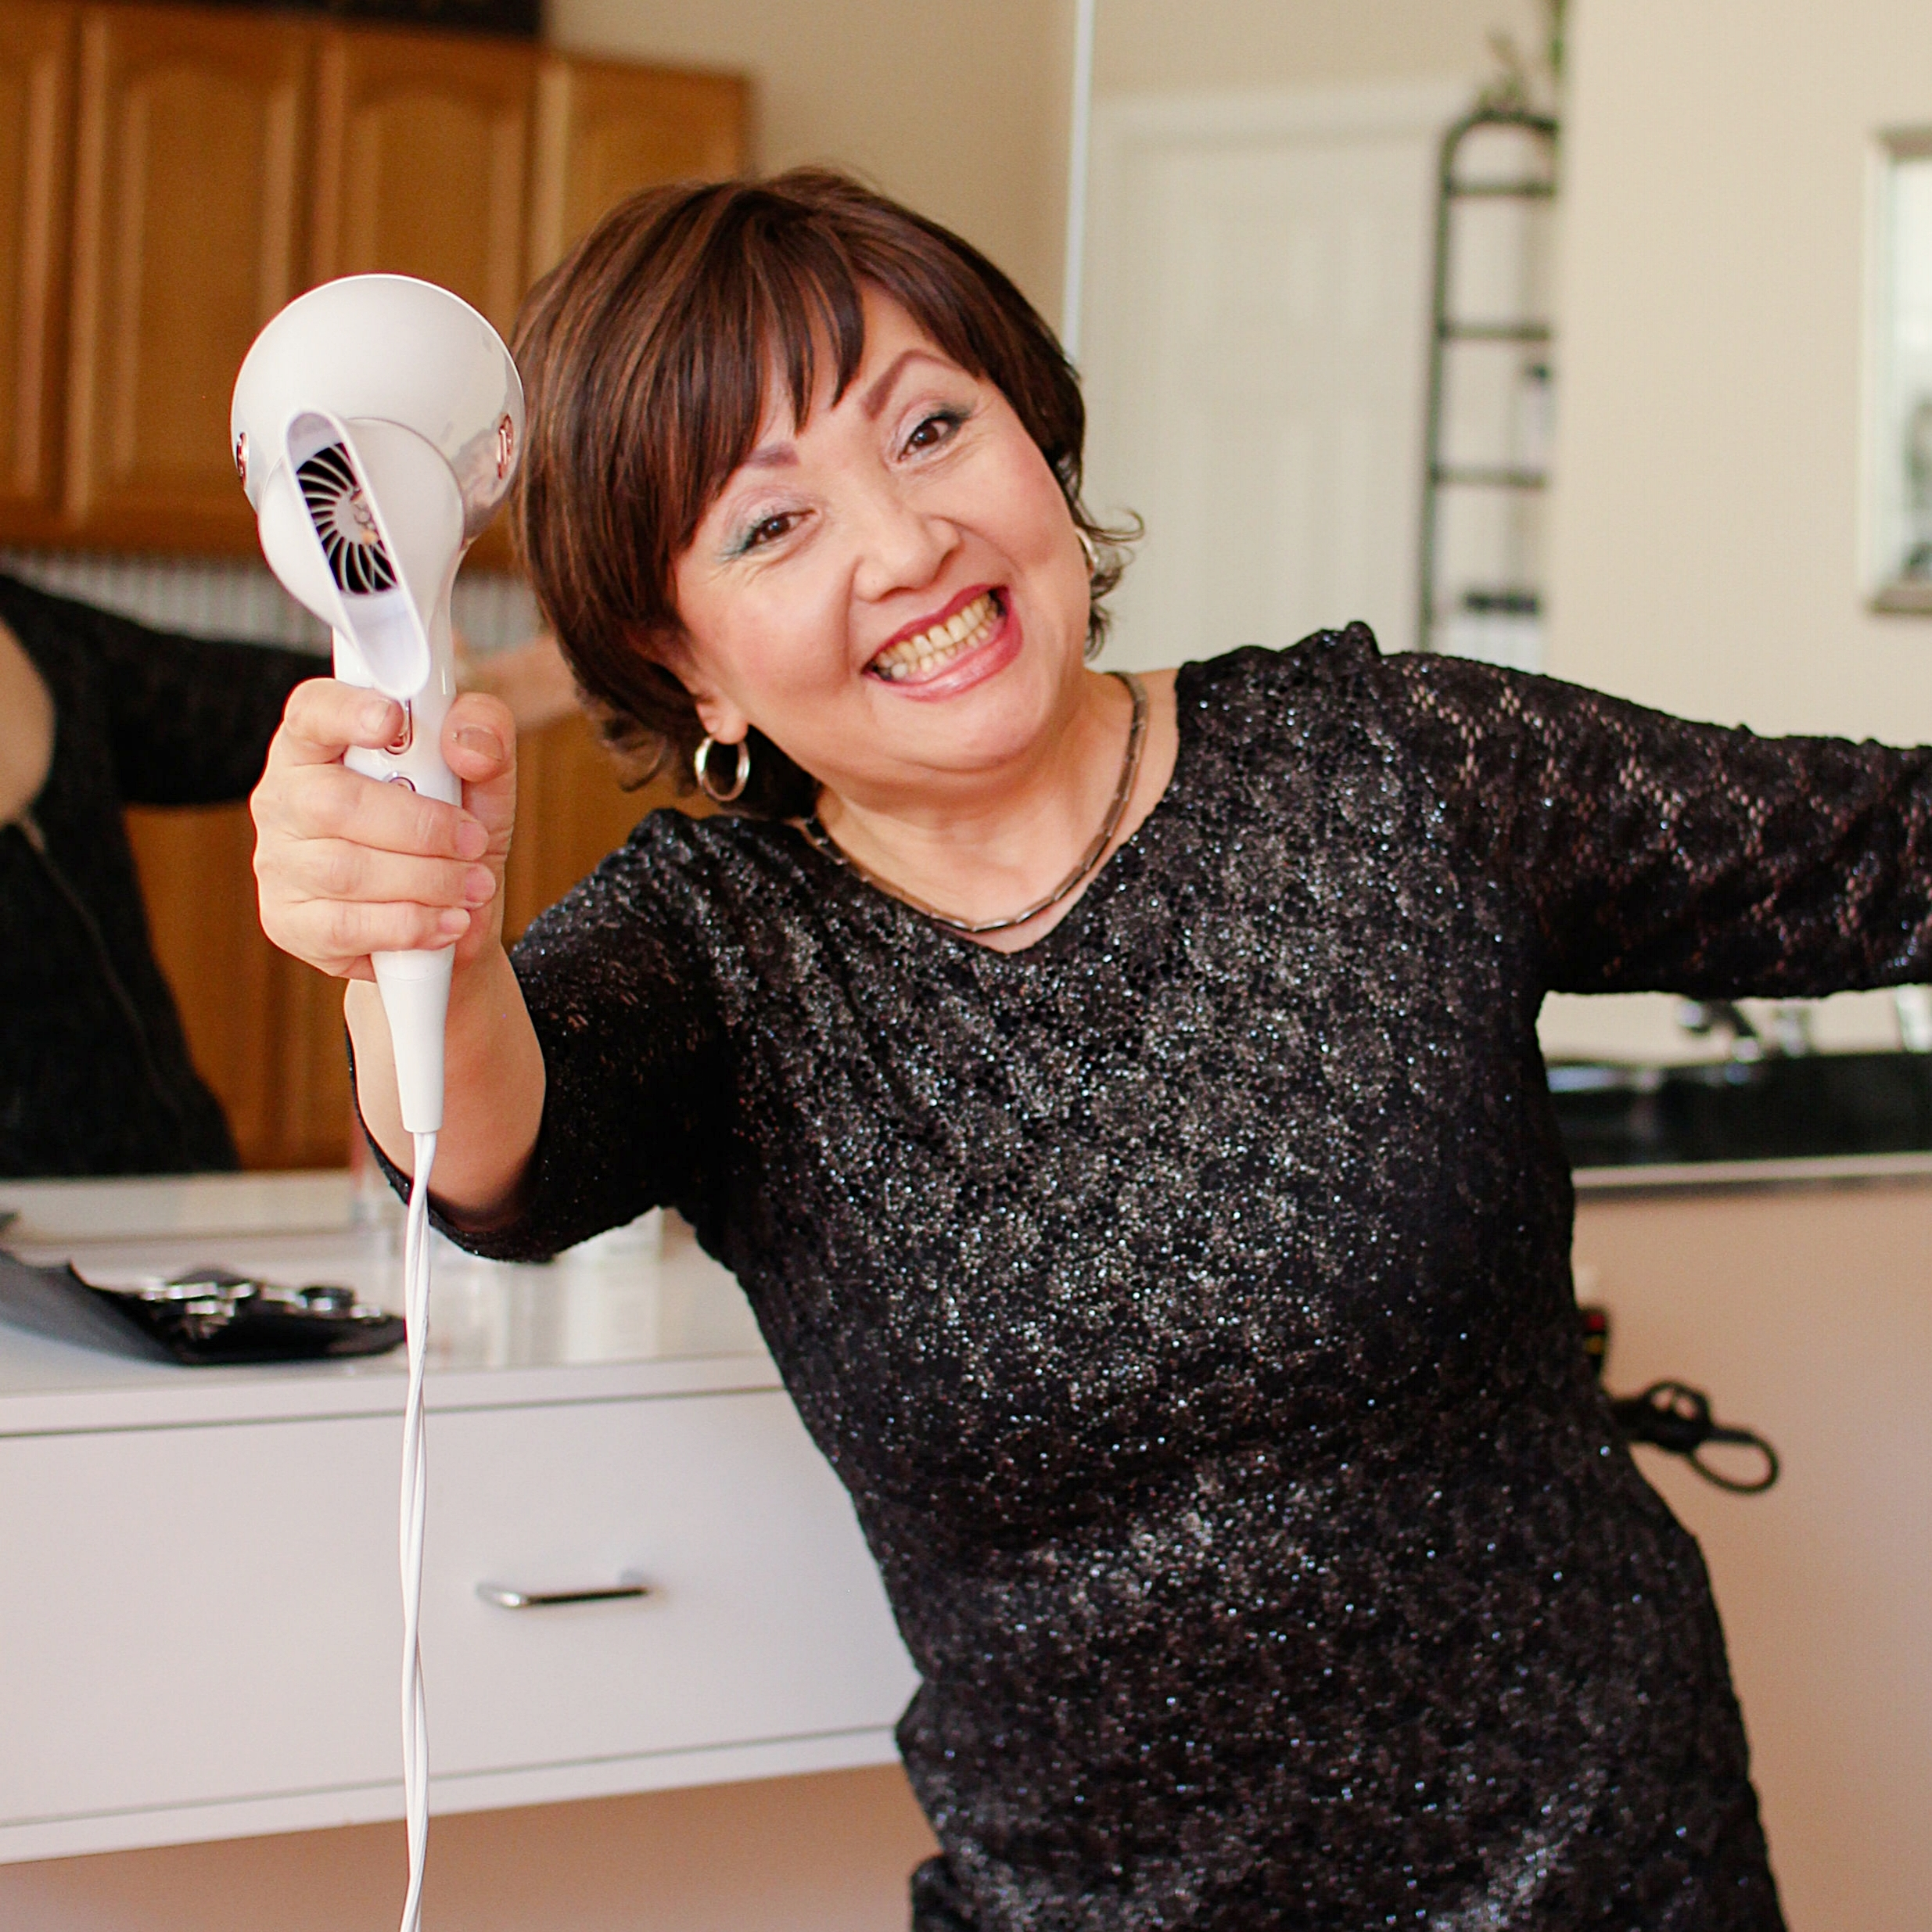 Meet Yuna - Yuna Beauty has been in business in Rockland County for over 20 years. Through word of mouth, she has become highly regarded as the expert in Japanese hair straightening in the Tri-State area. What sets Yuna apart is her innate understanding of hair and the straightening process. Her warm and out-going personality makes her fun to be around. Most of Yuna's clients have become family. Yuna is the only professional on site so clients receive a unique one-on-one experience. Loyal clients come back to the salon for its casual and cozy vibe. Yuna Beauty is a full service salon that is located in the heart of New City on Main Street.